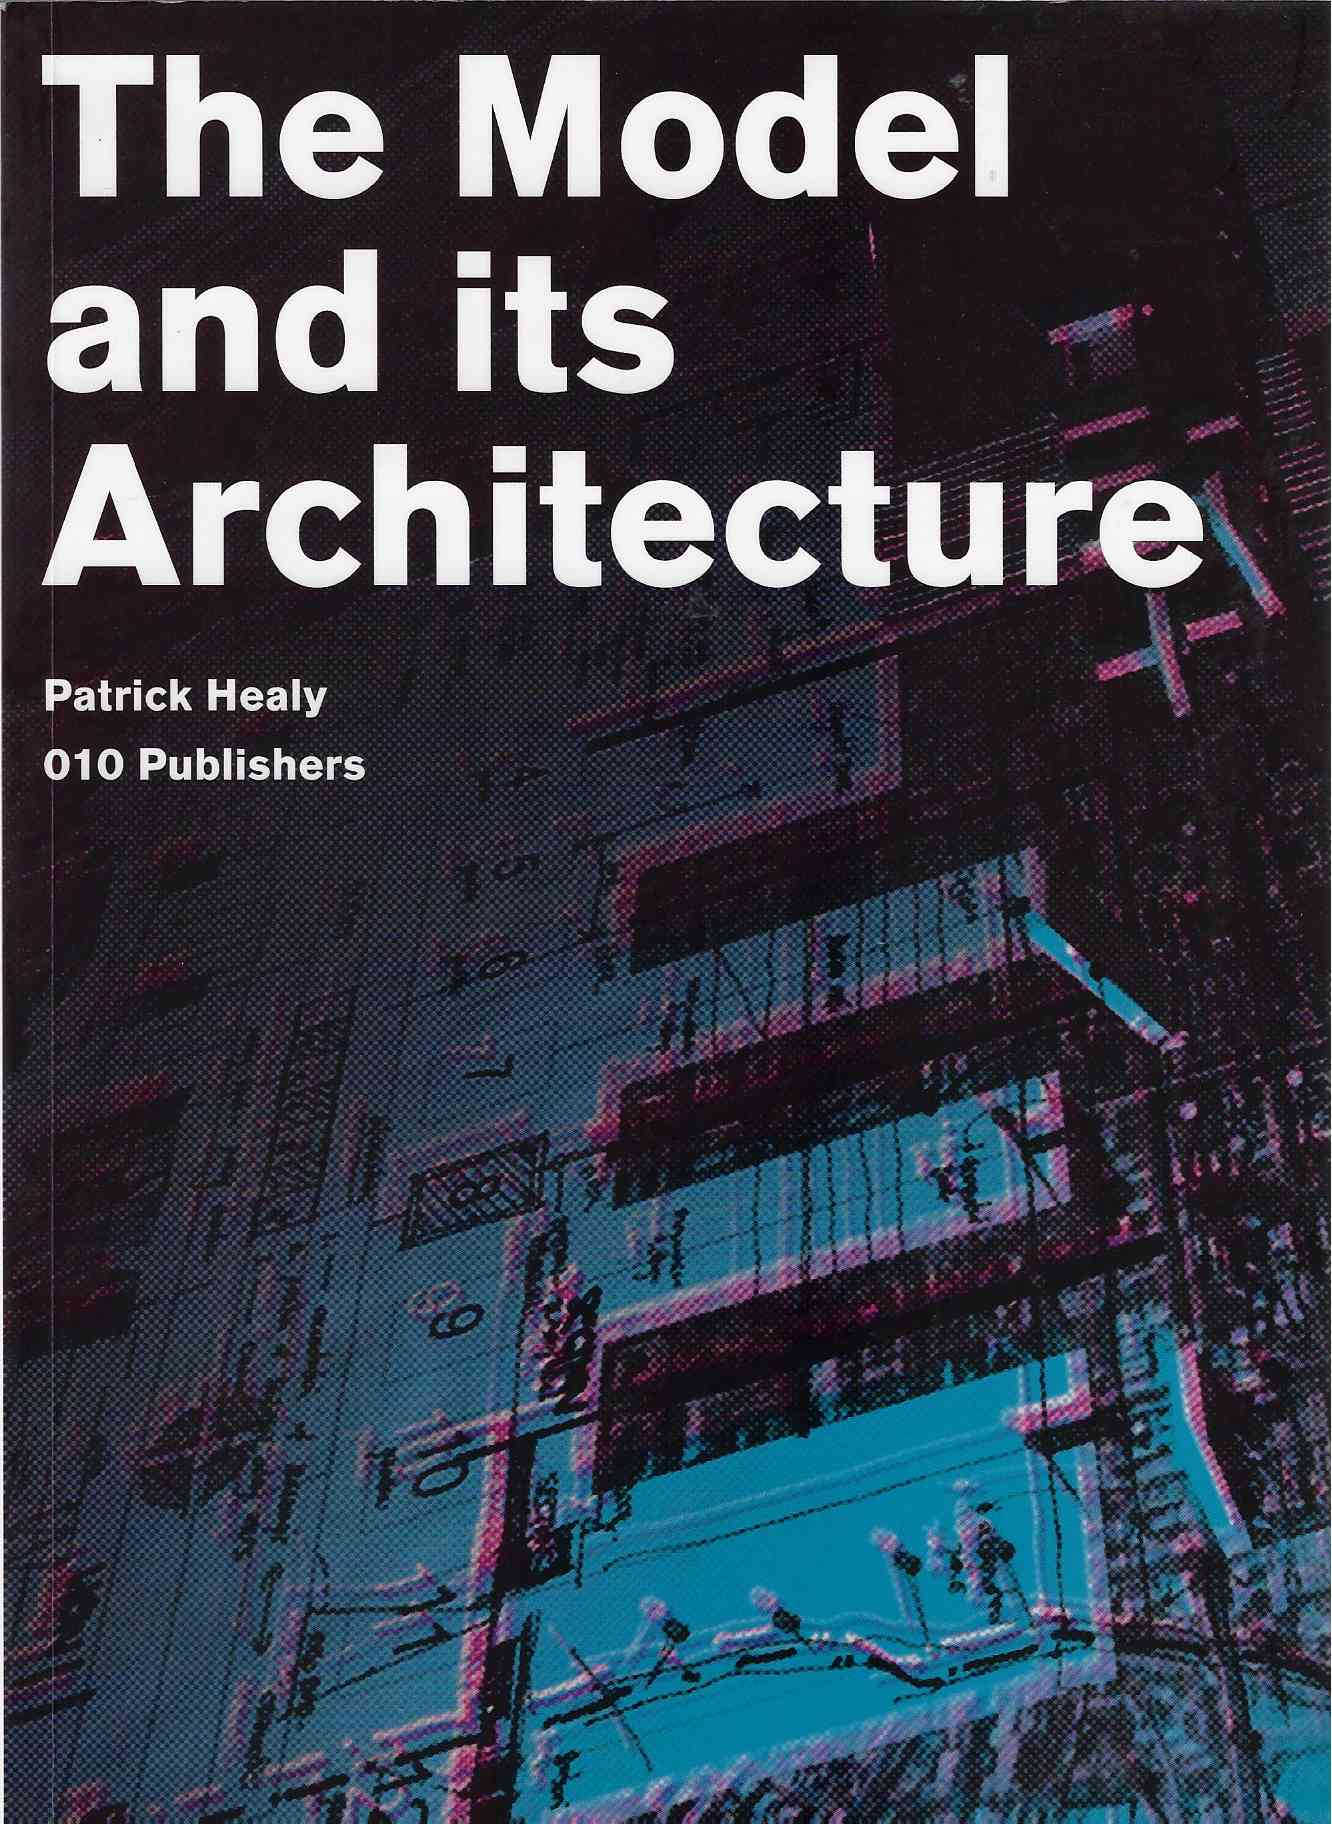 Image for Patrick Healy The Model and its Architecture